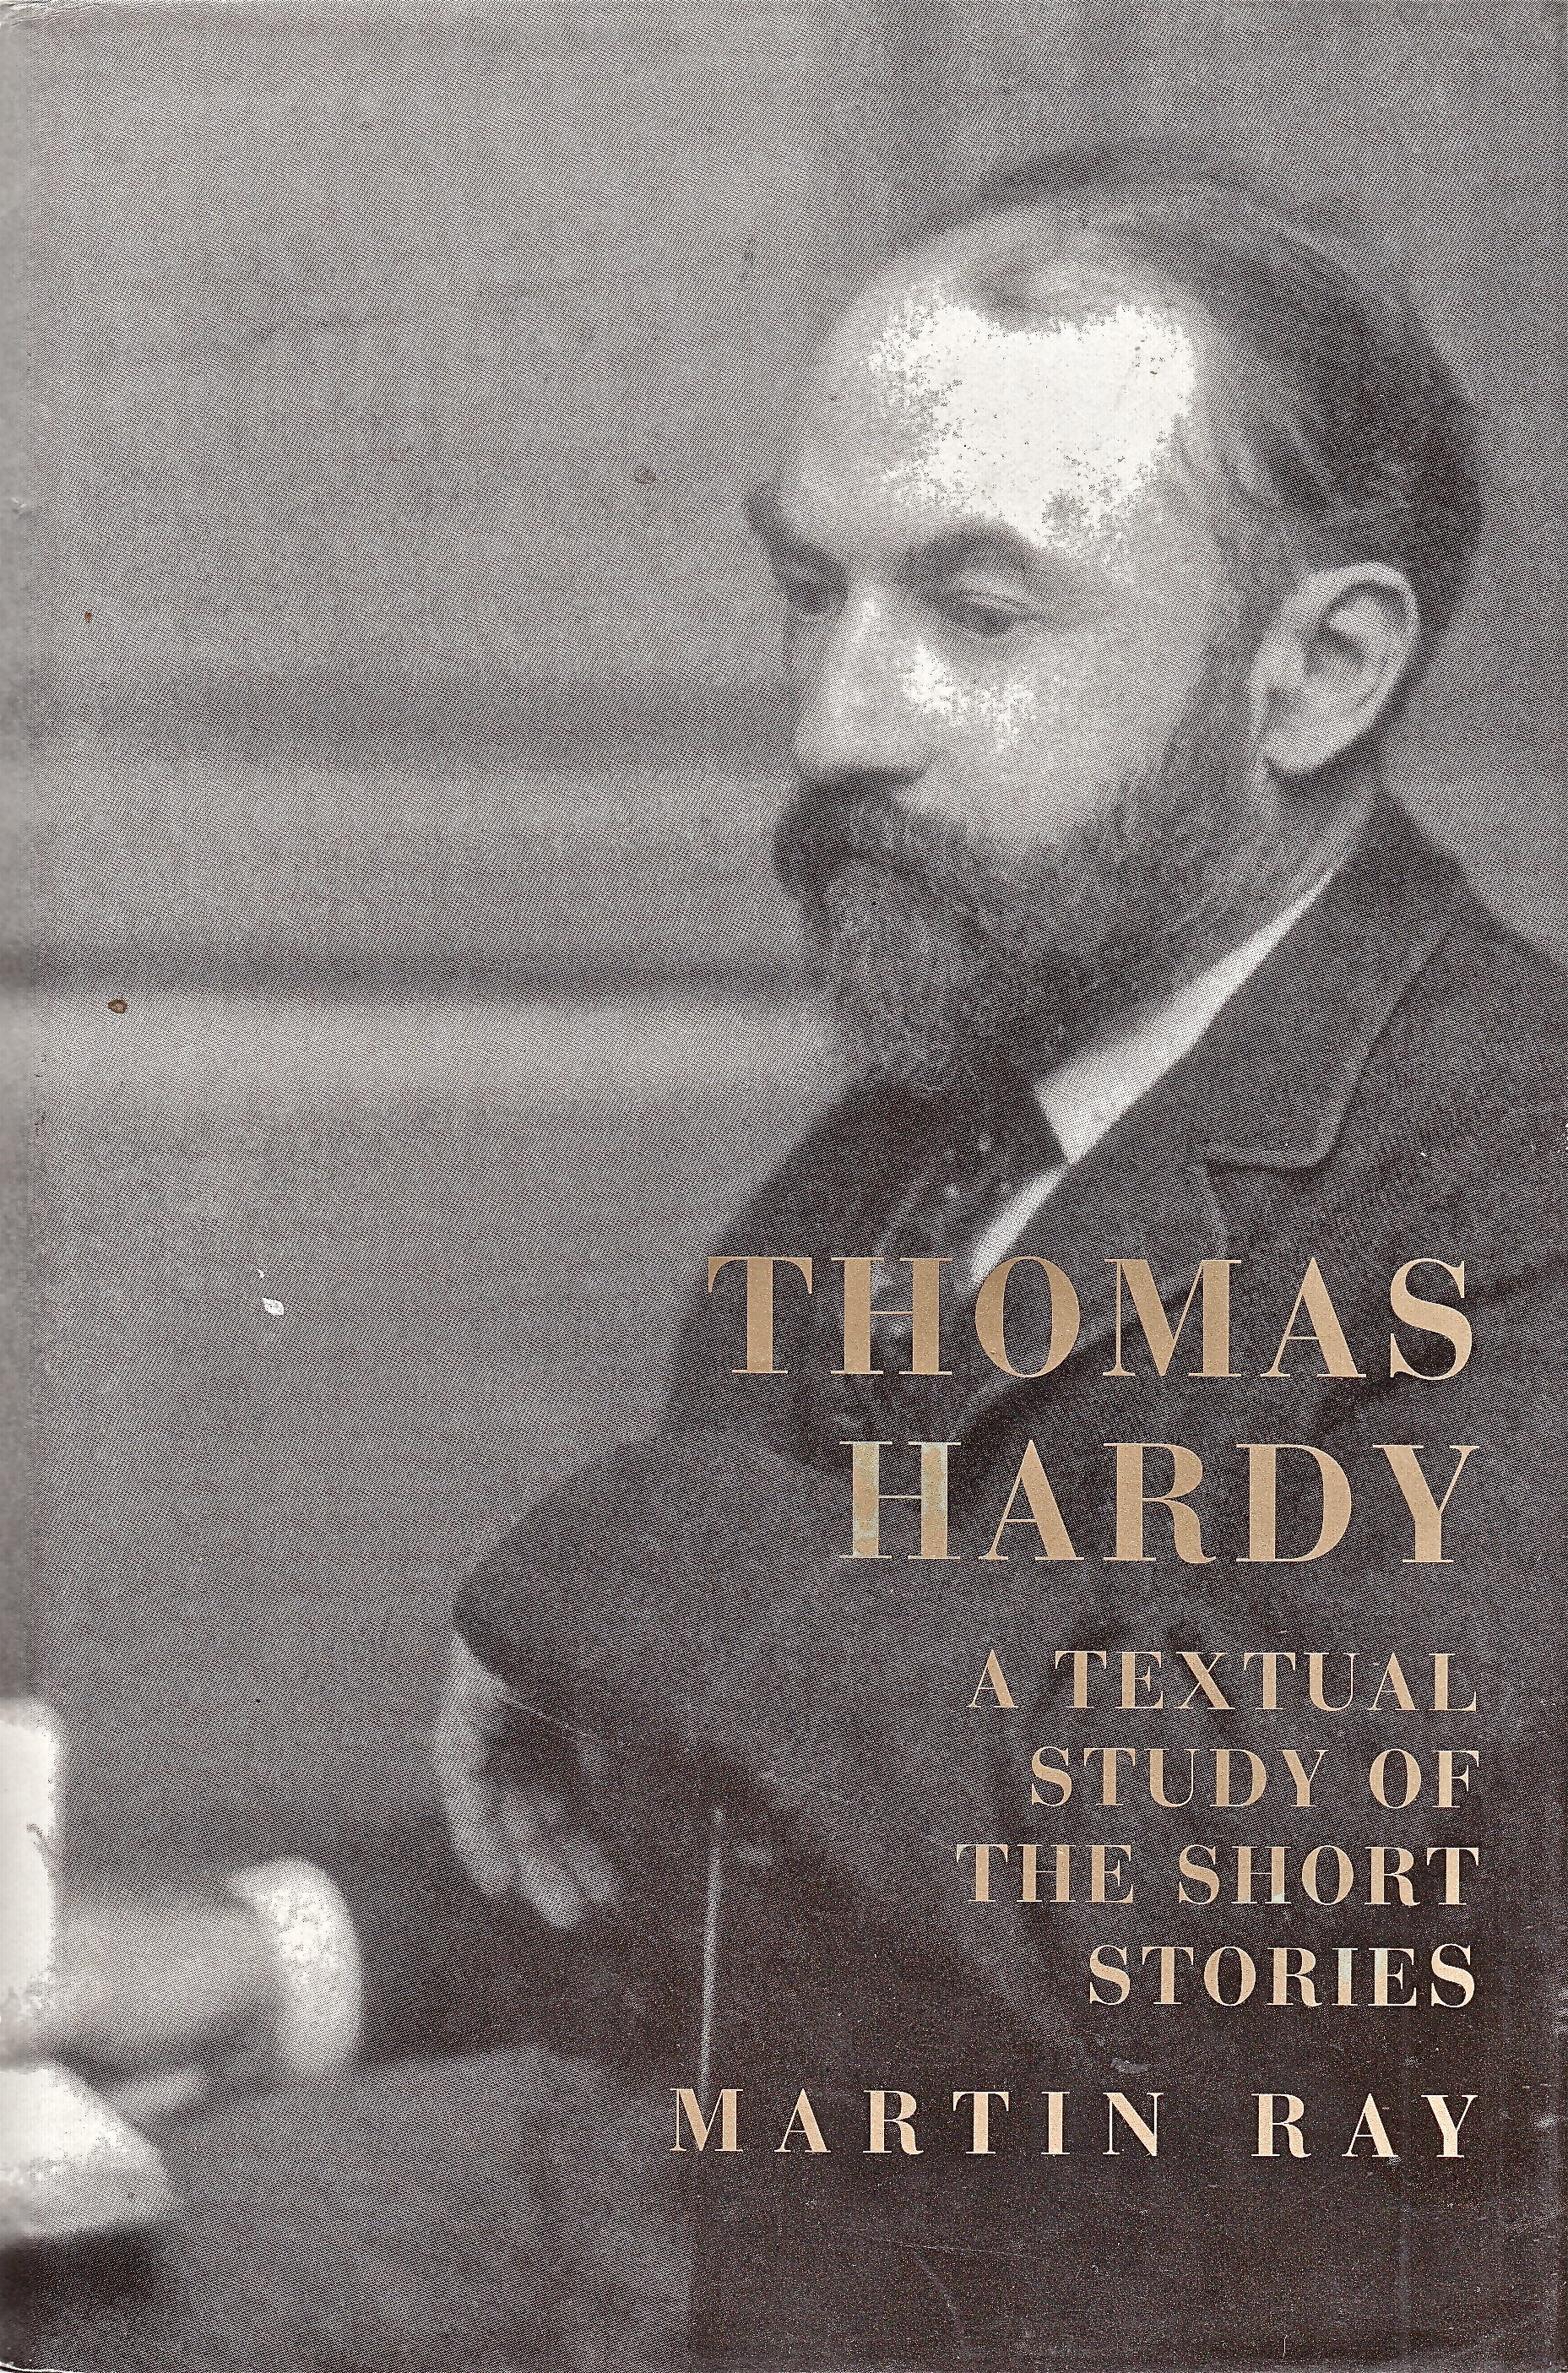 short story and thomas hardy Thomas hardy's short stories: new perspectives (the nineteenth century series) 9 nov 2016 by juliette berning schaefer and siobhan craft brownson hardcover £12037 prime eligible for free uk delivery only 1 left in stock - order soon more buying choices £9399 (25 used & new offers) kindle edition.